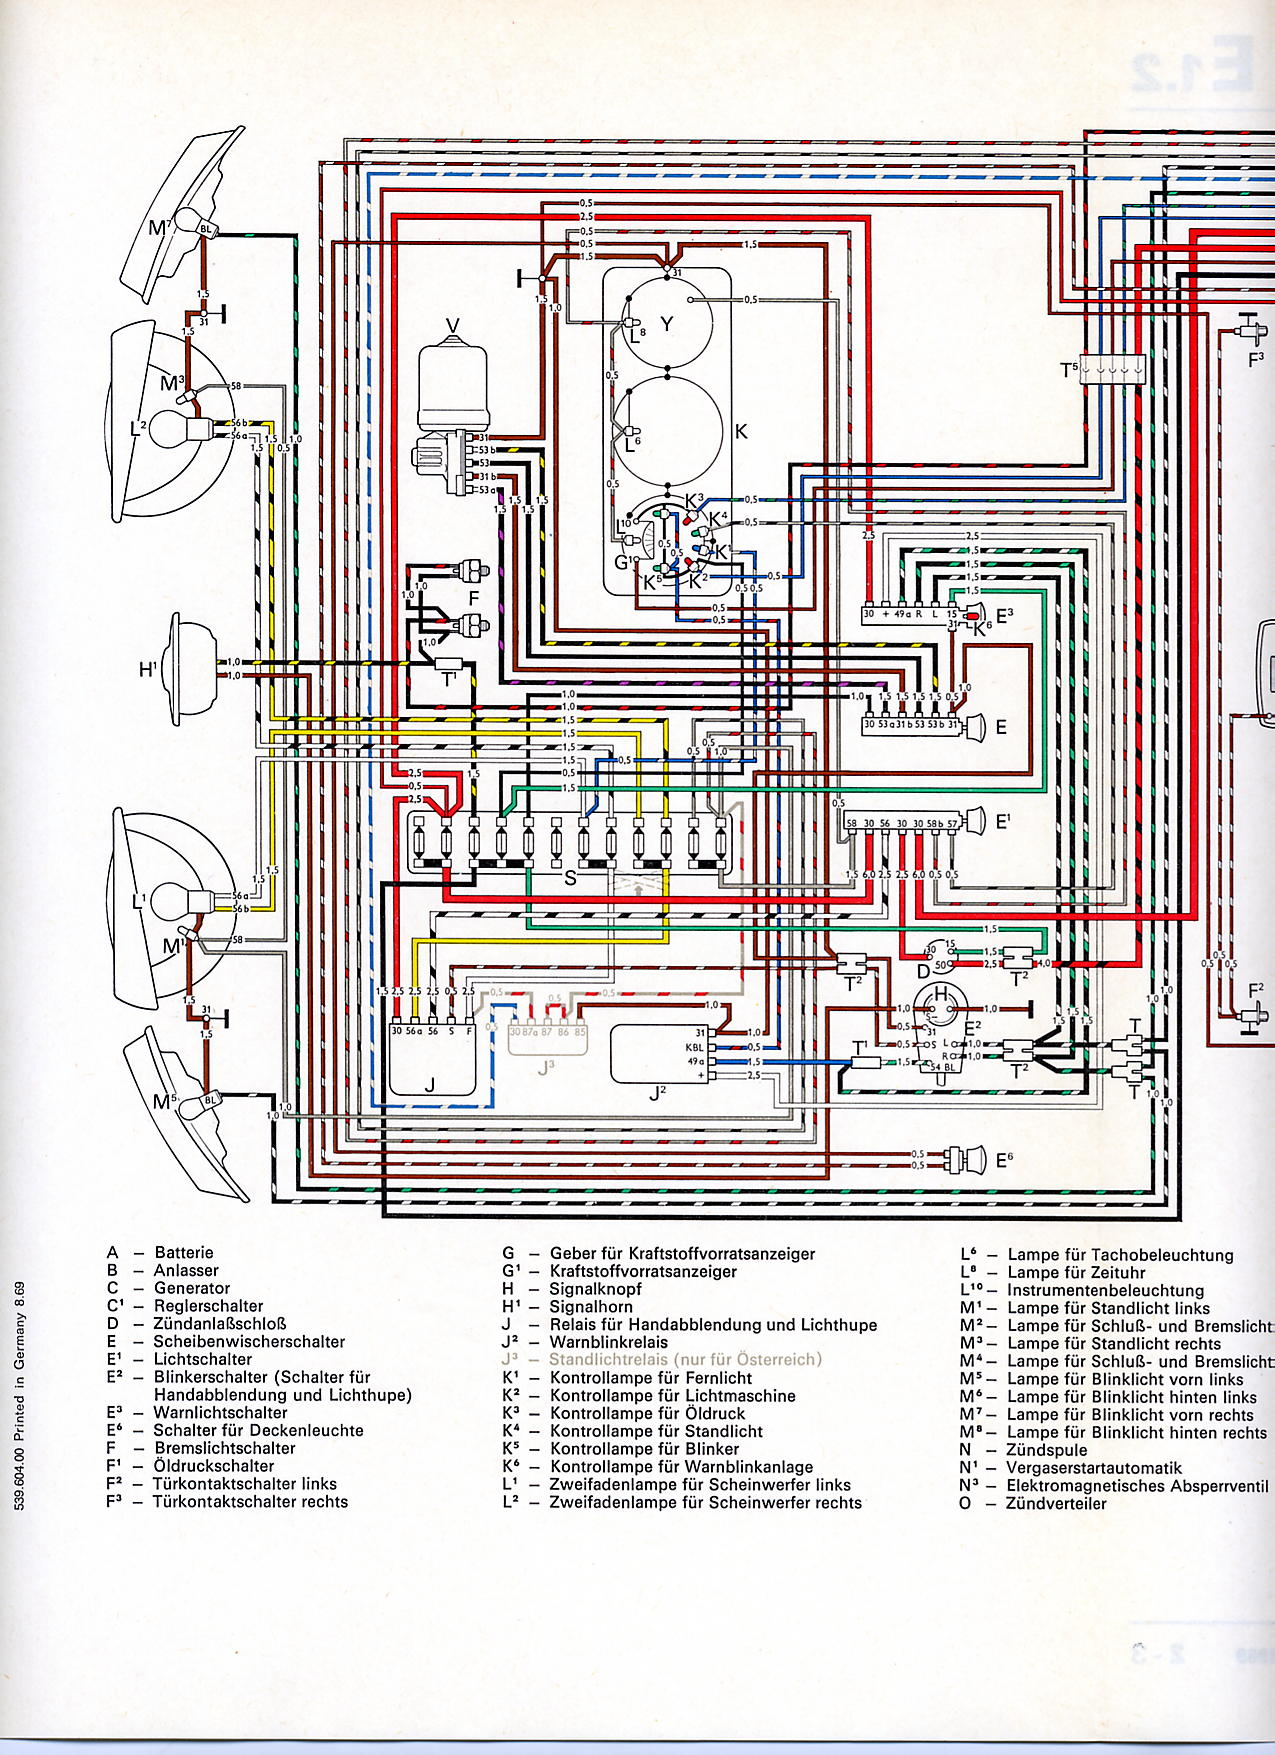 Vw Bus And Other Wiring Diagrams Buss S Type Fuse Box De Y 1 2